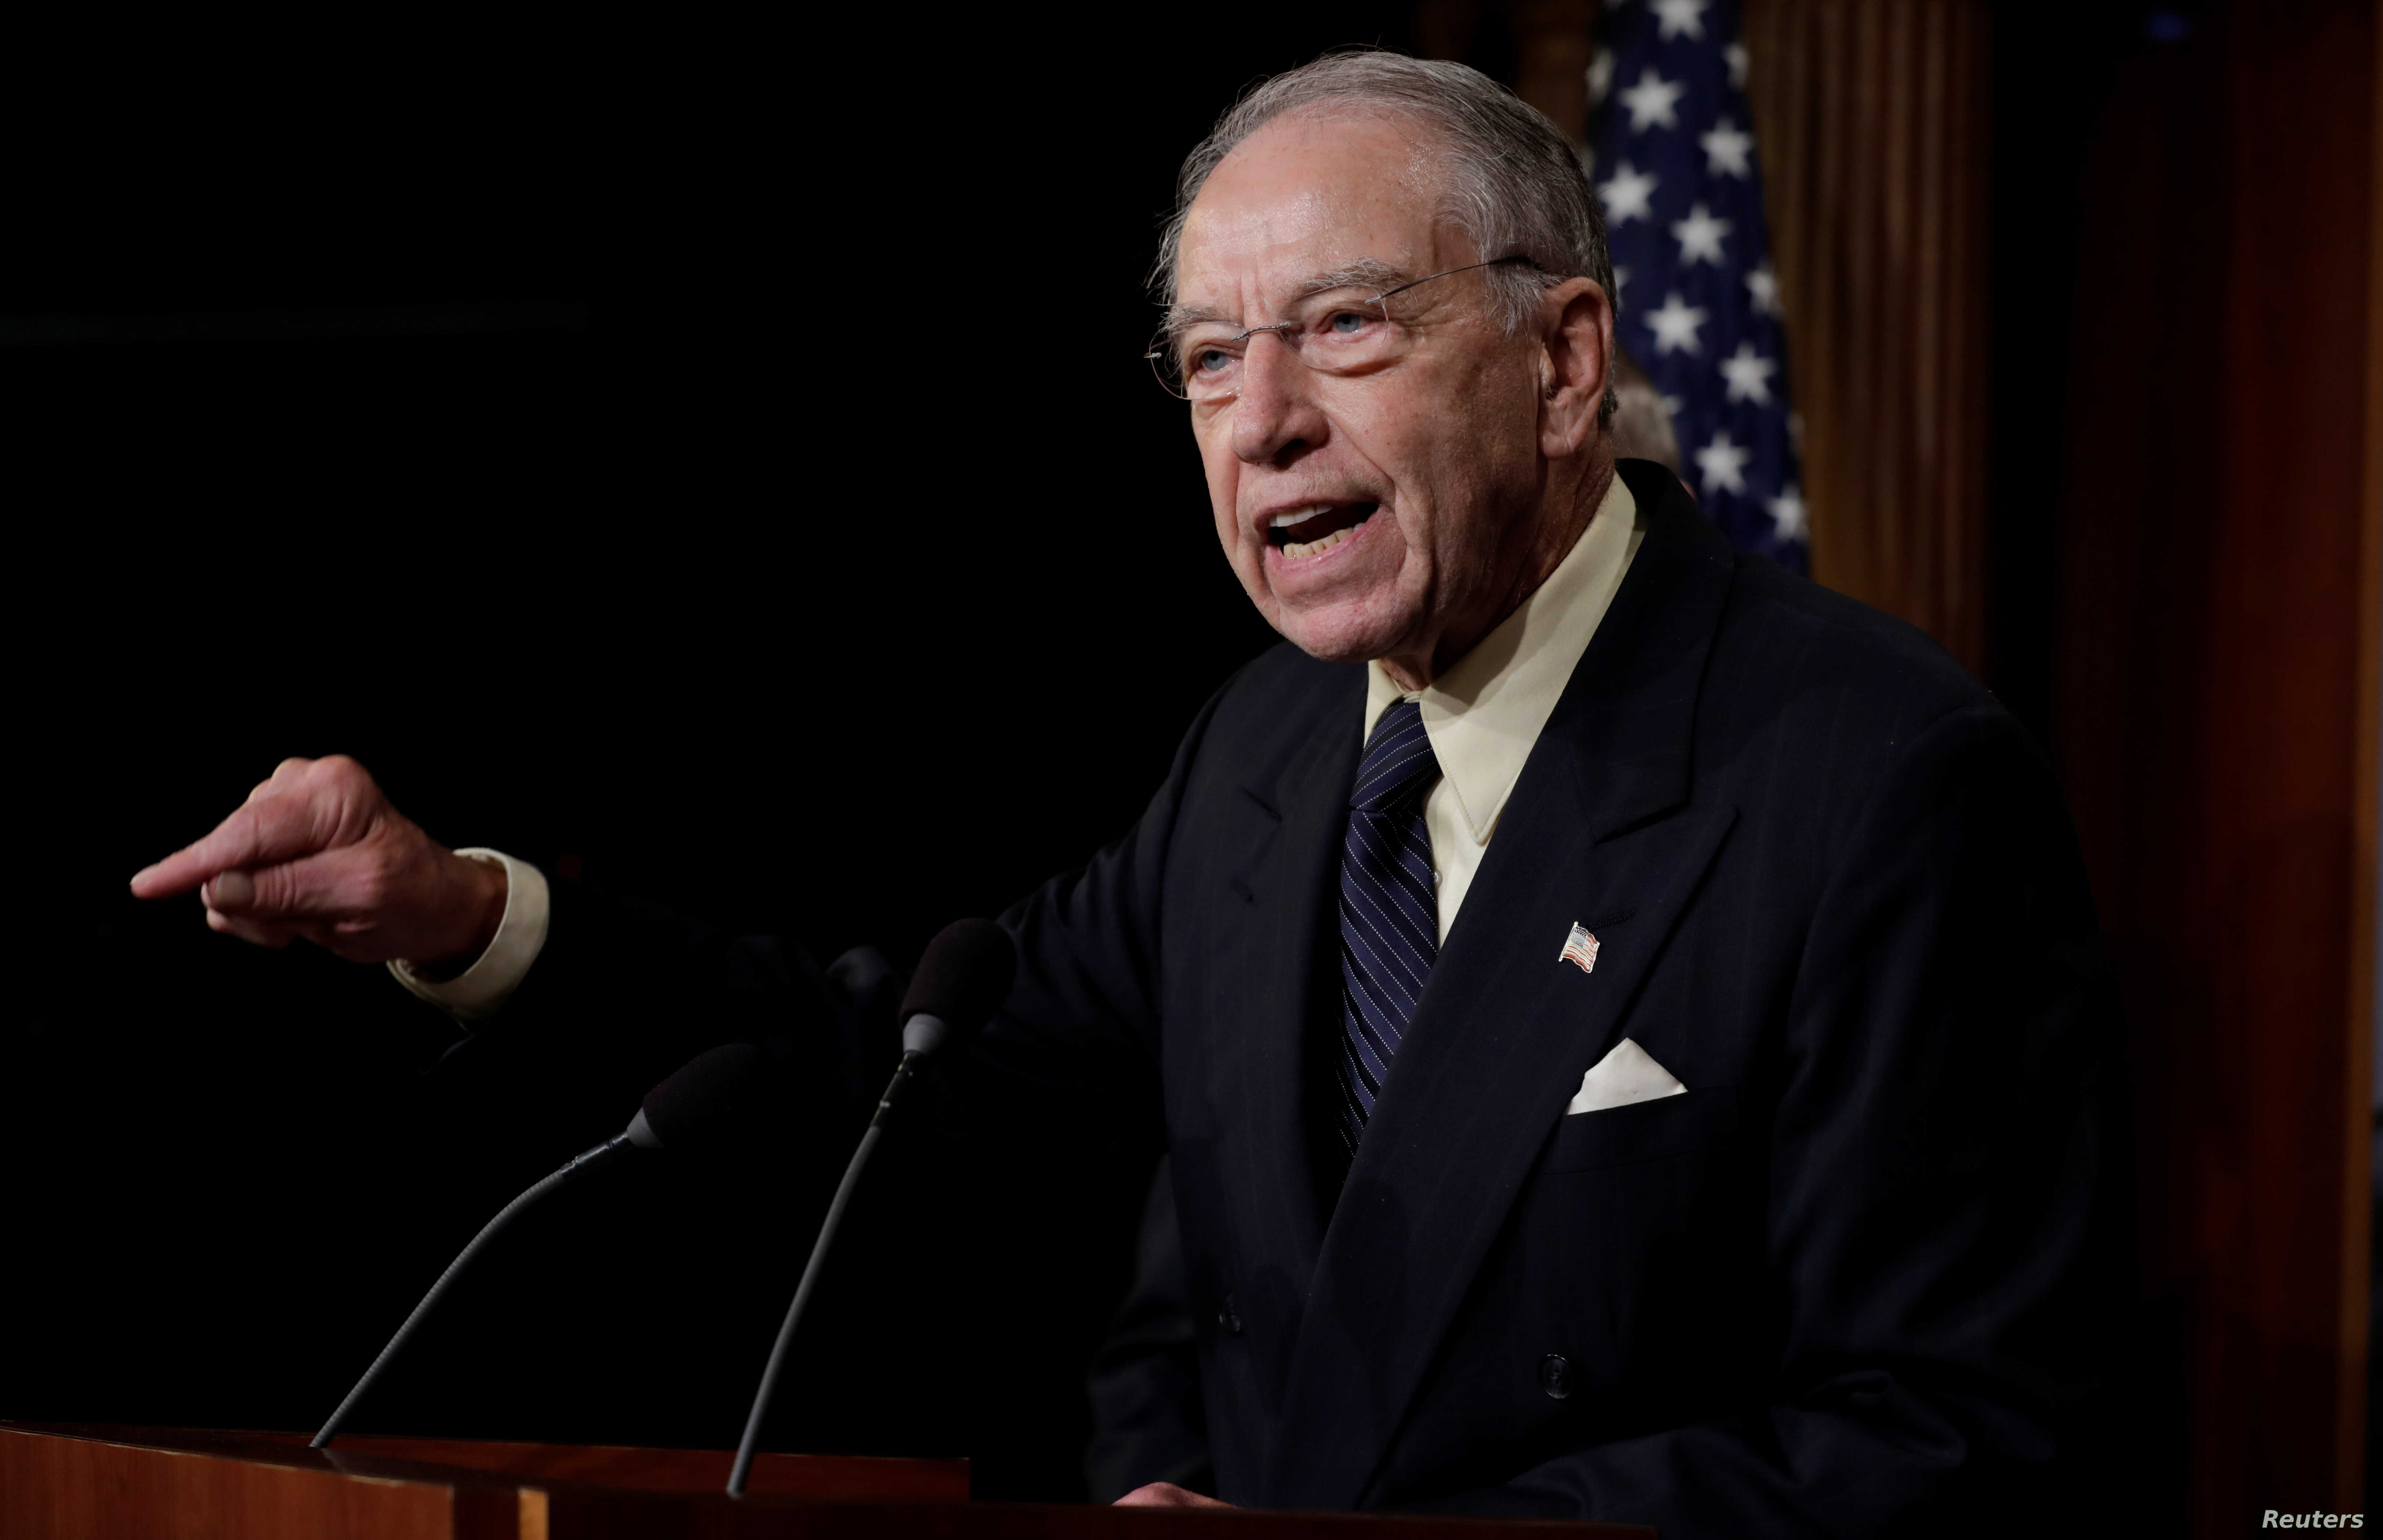 U.S. Senate Judiciary Committee Chairman Senator Chuck Grassley (R-IA) speaks during a news conference to discuss the FBI background investigation into the assault allegations against U.S. Supreme Court nominee Judge Brett Kavanaugh on Capitol Hill i...